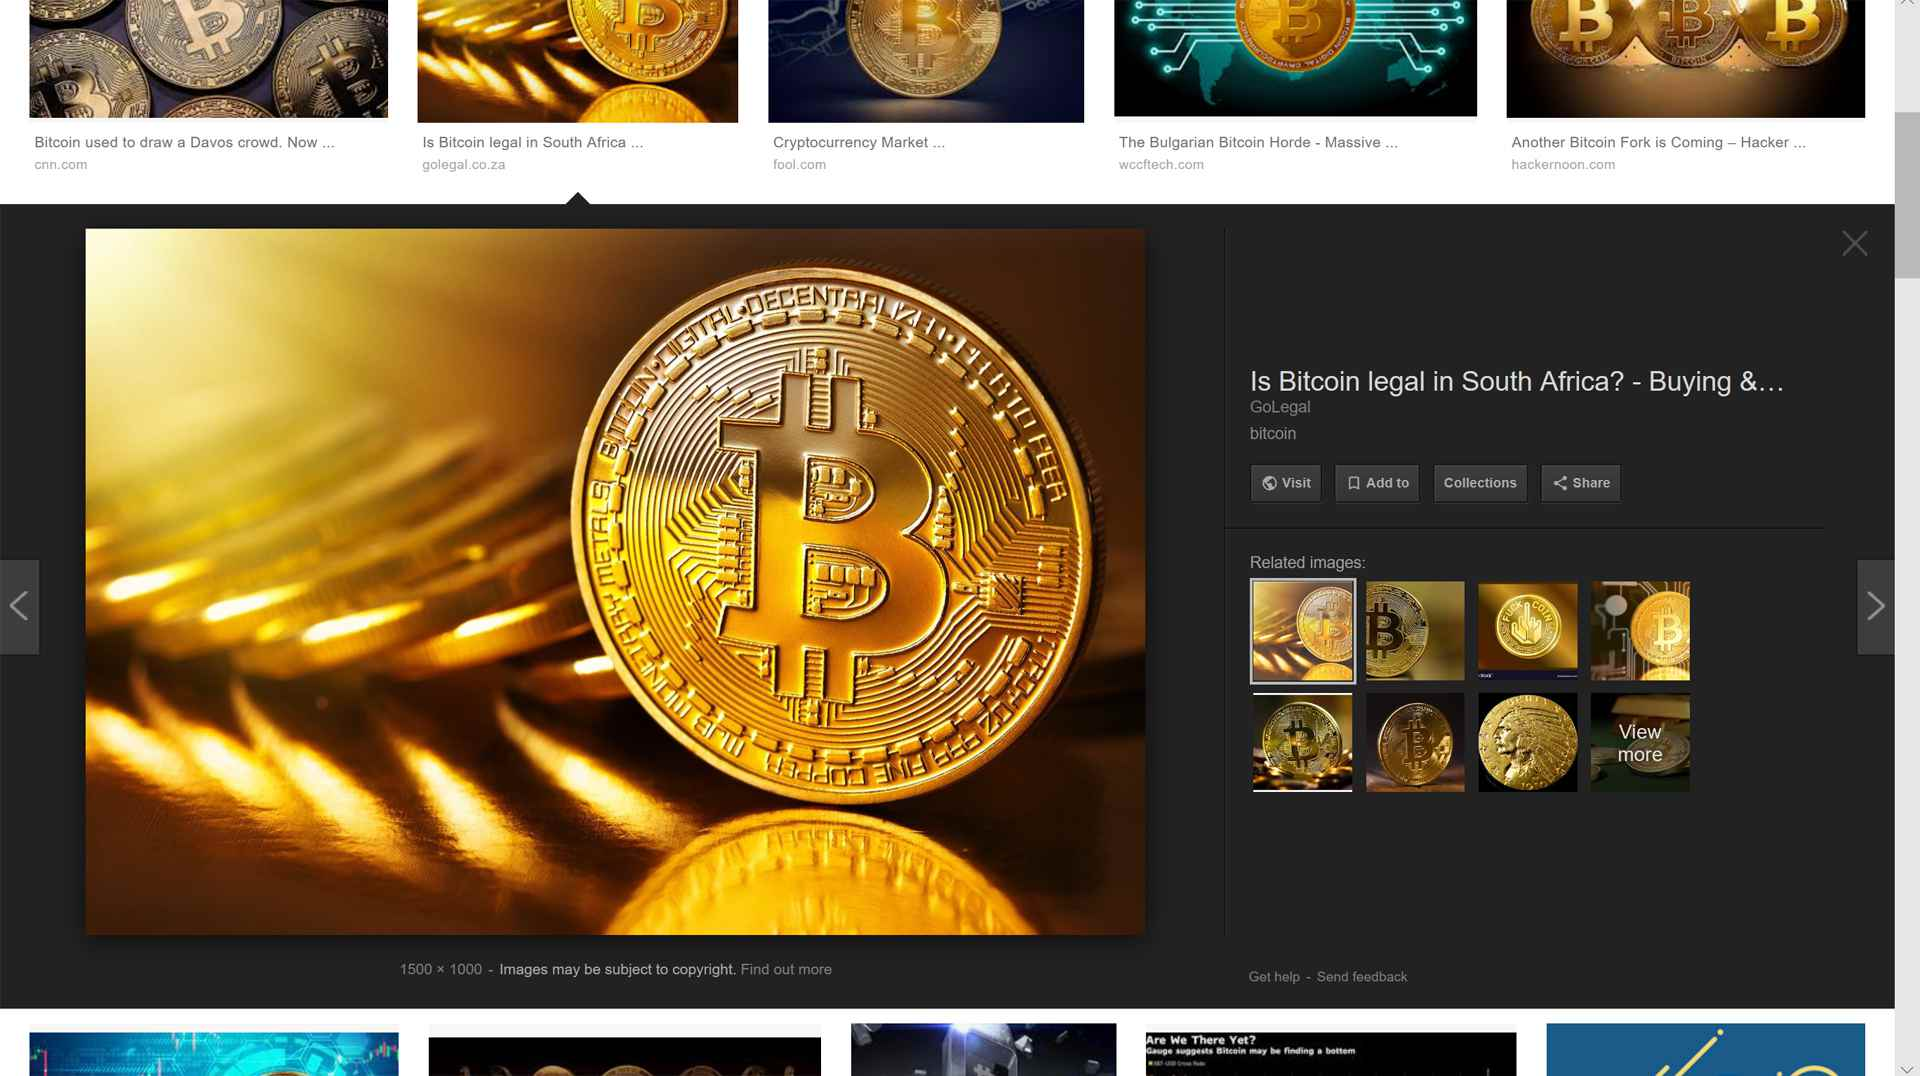 Screenshot of Bitcoin images in Google Images search results.